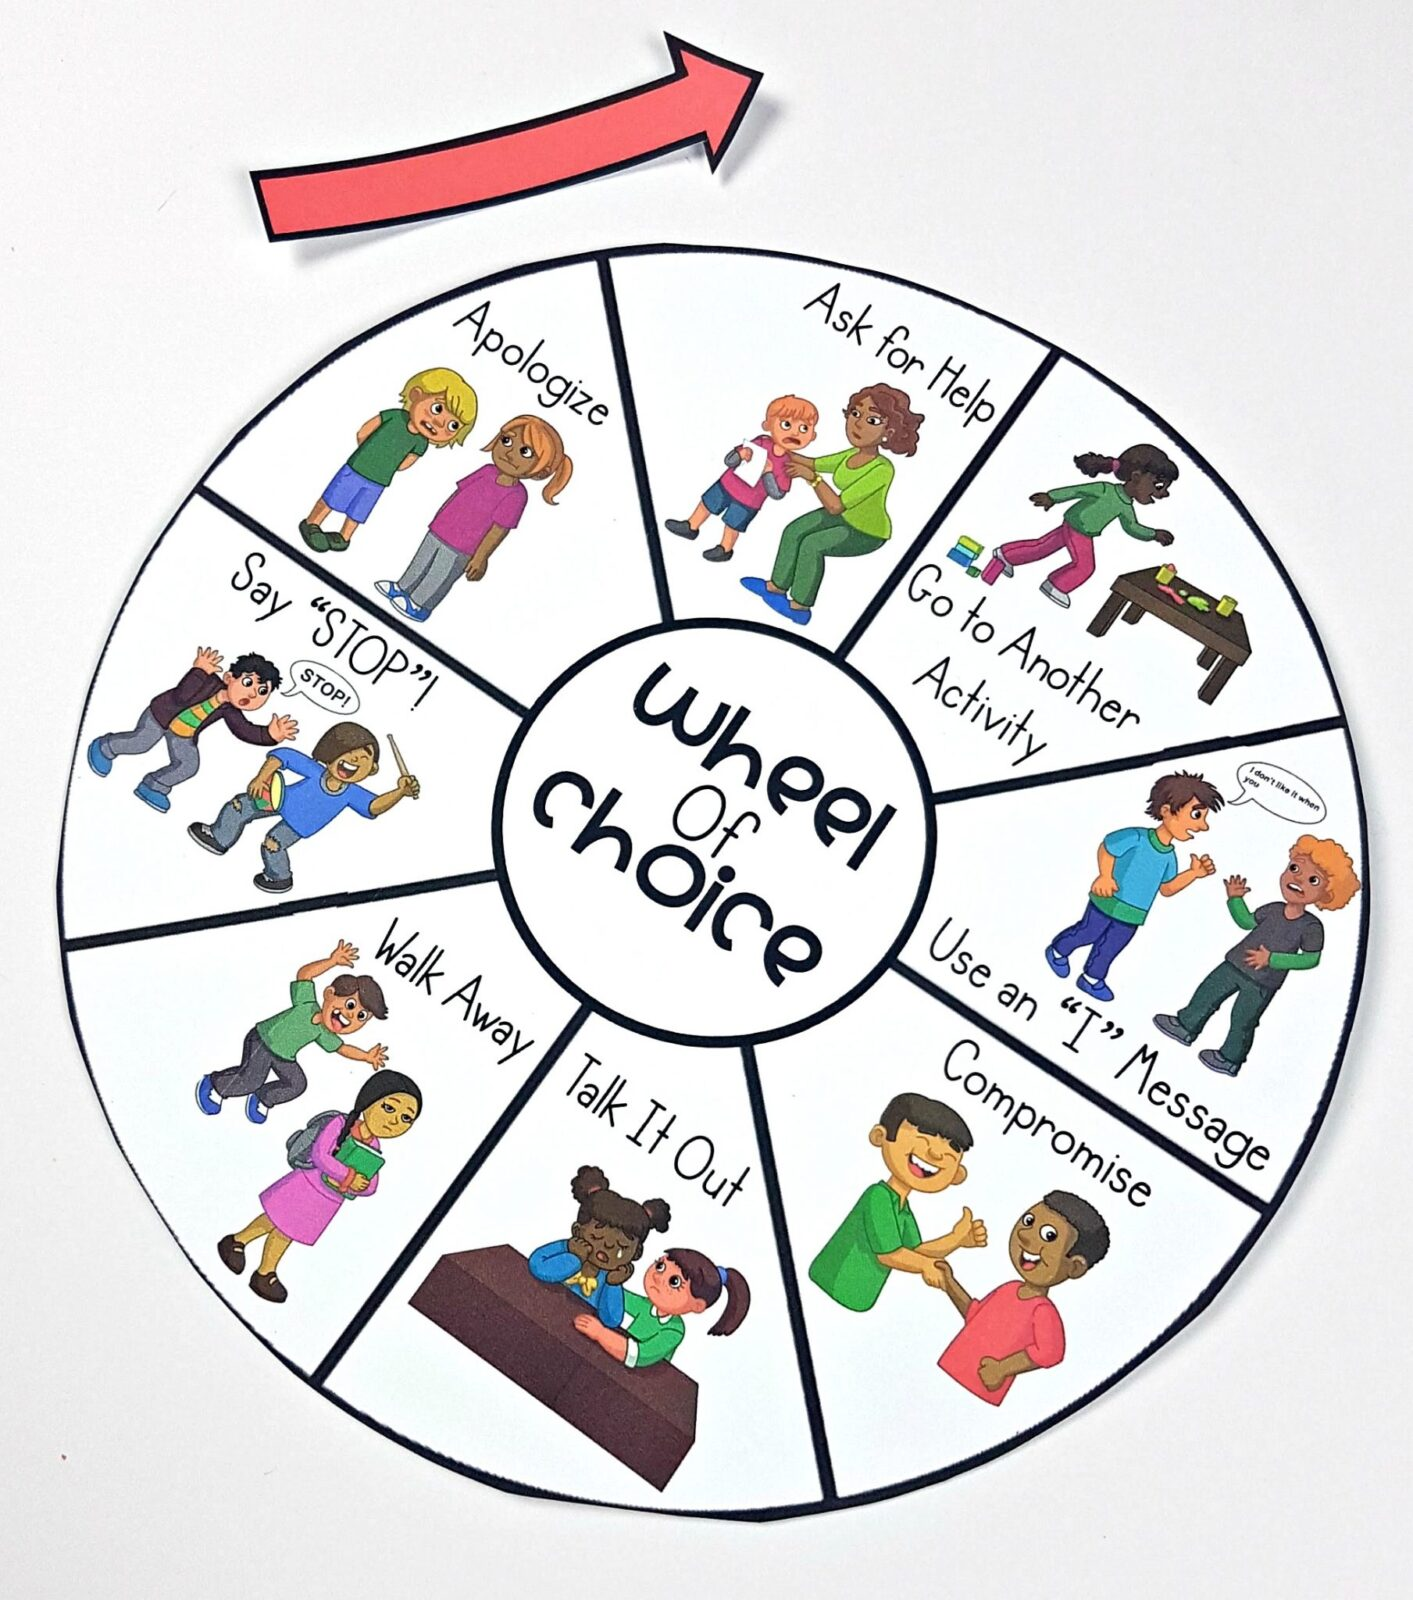 conflict resolution activities - wheel of choice ways to solve problems